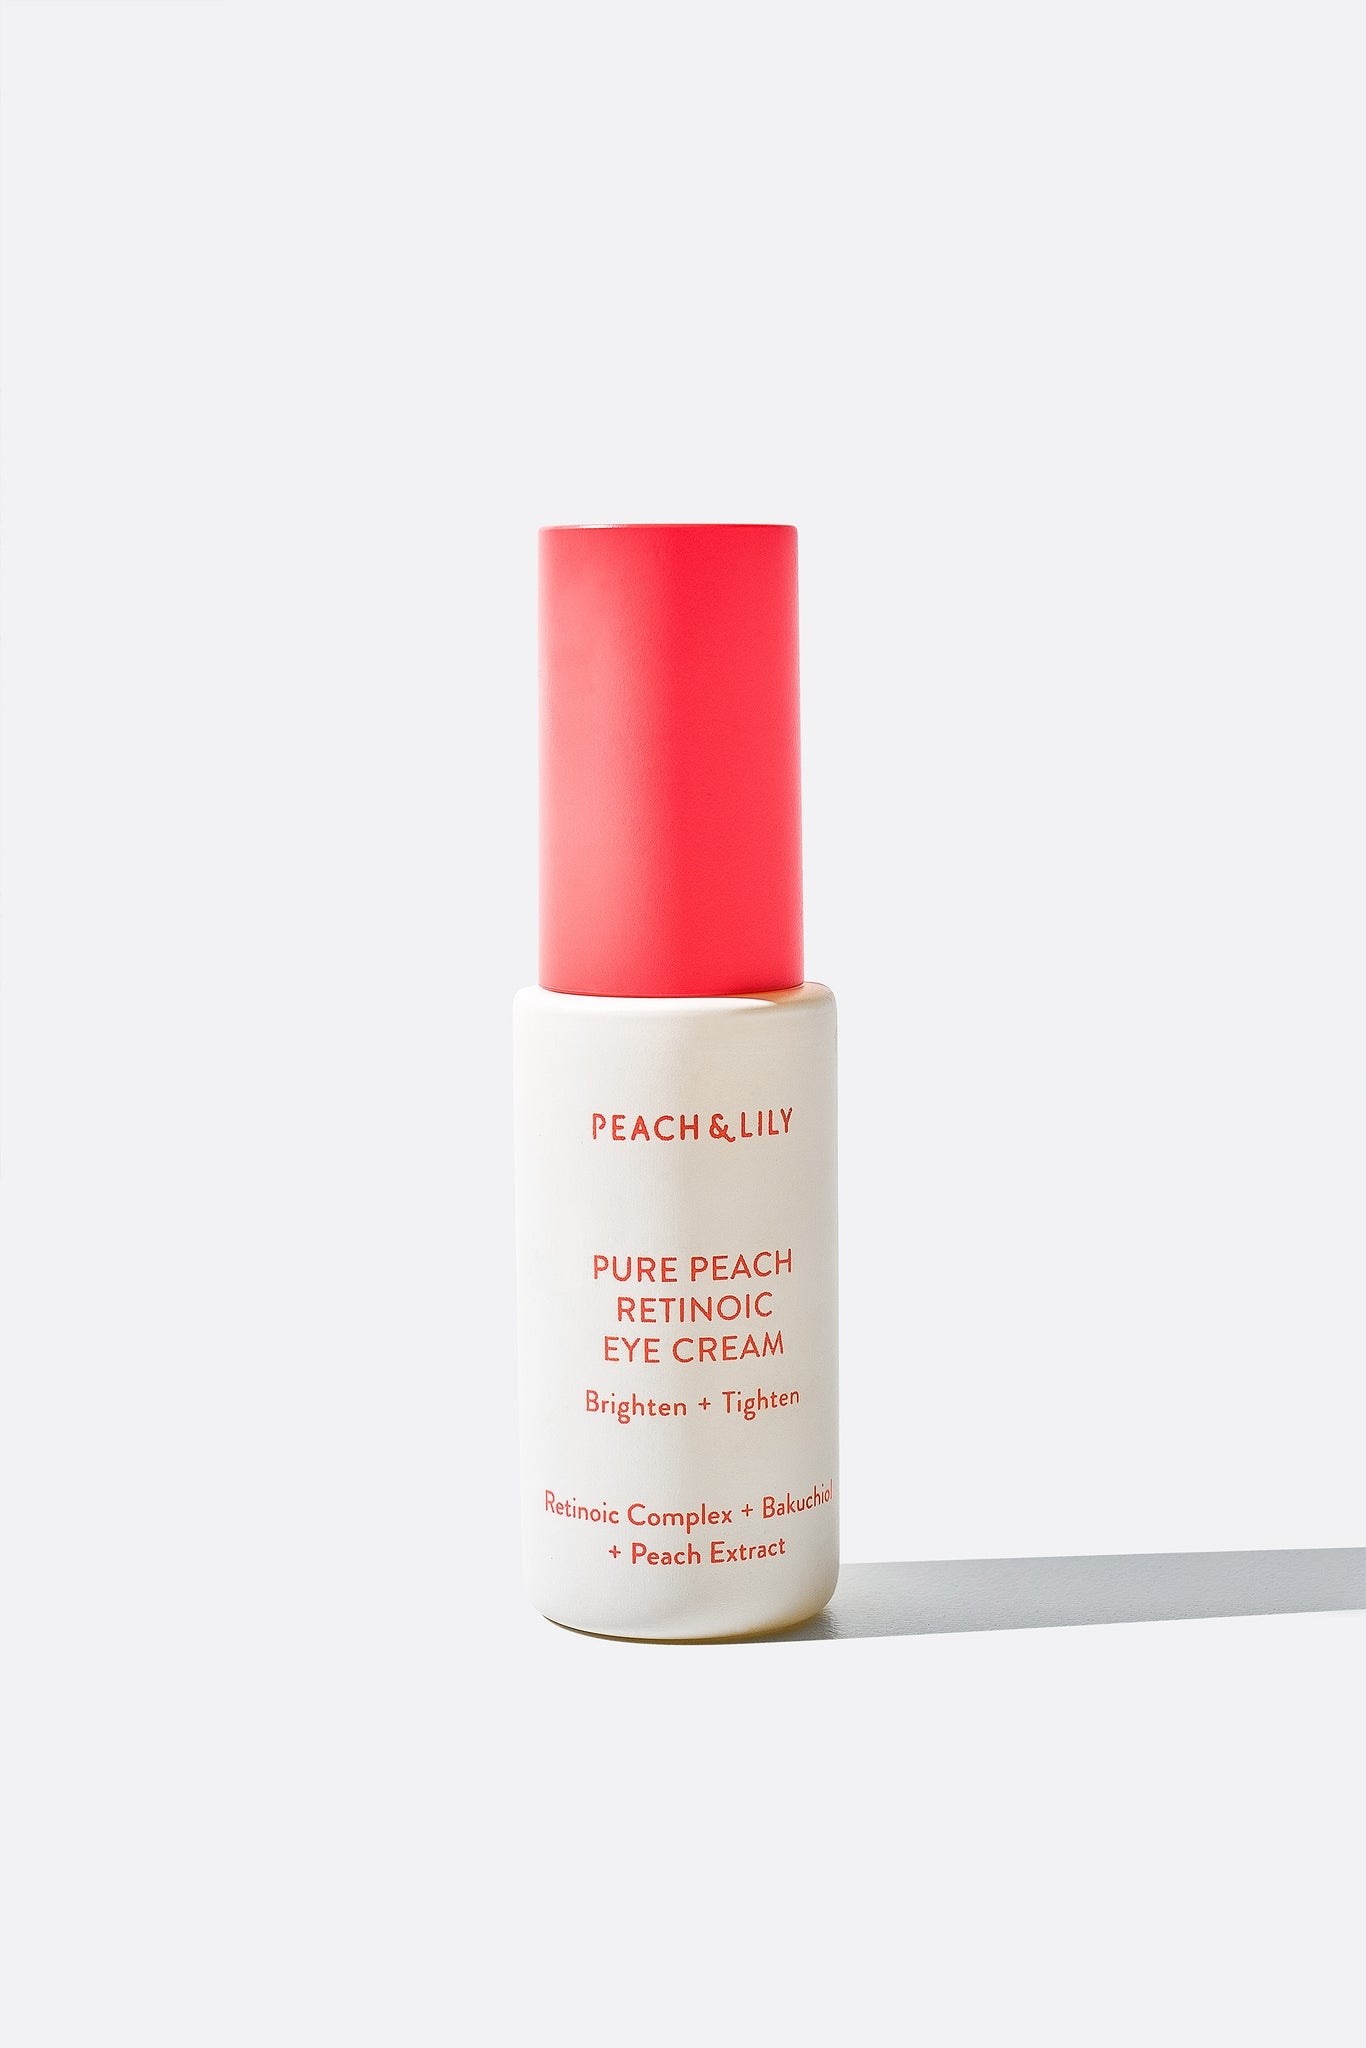 Pure Peach Retinoic Eye Cream